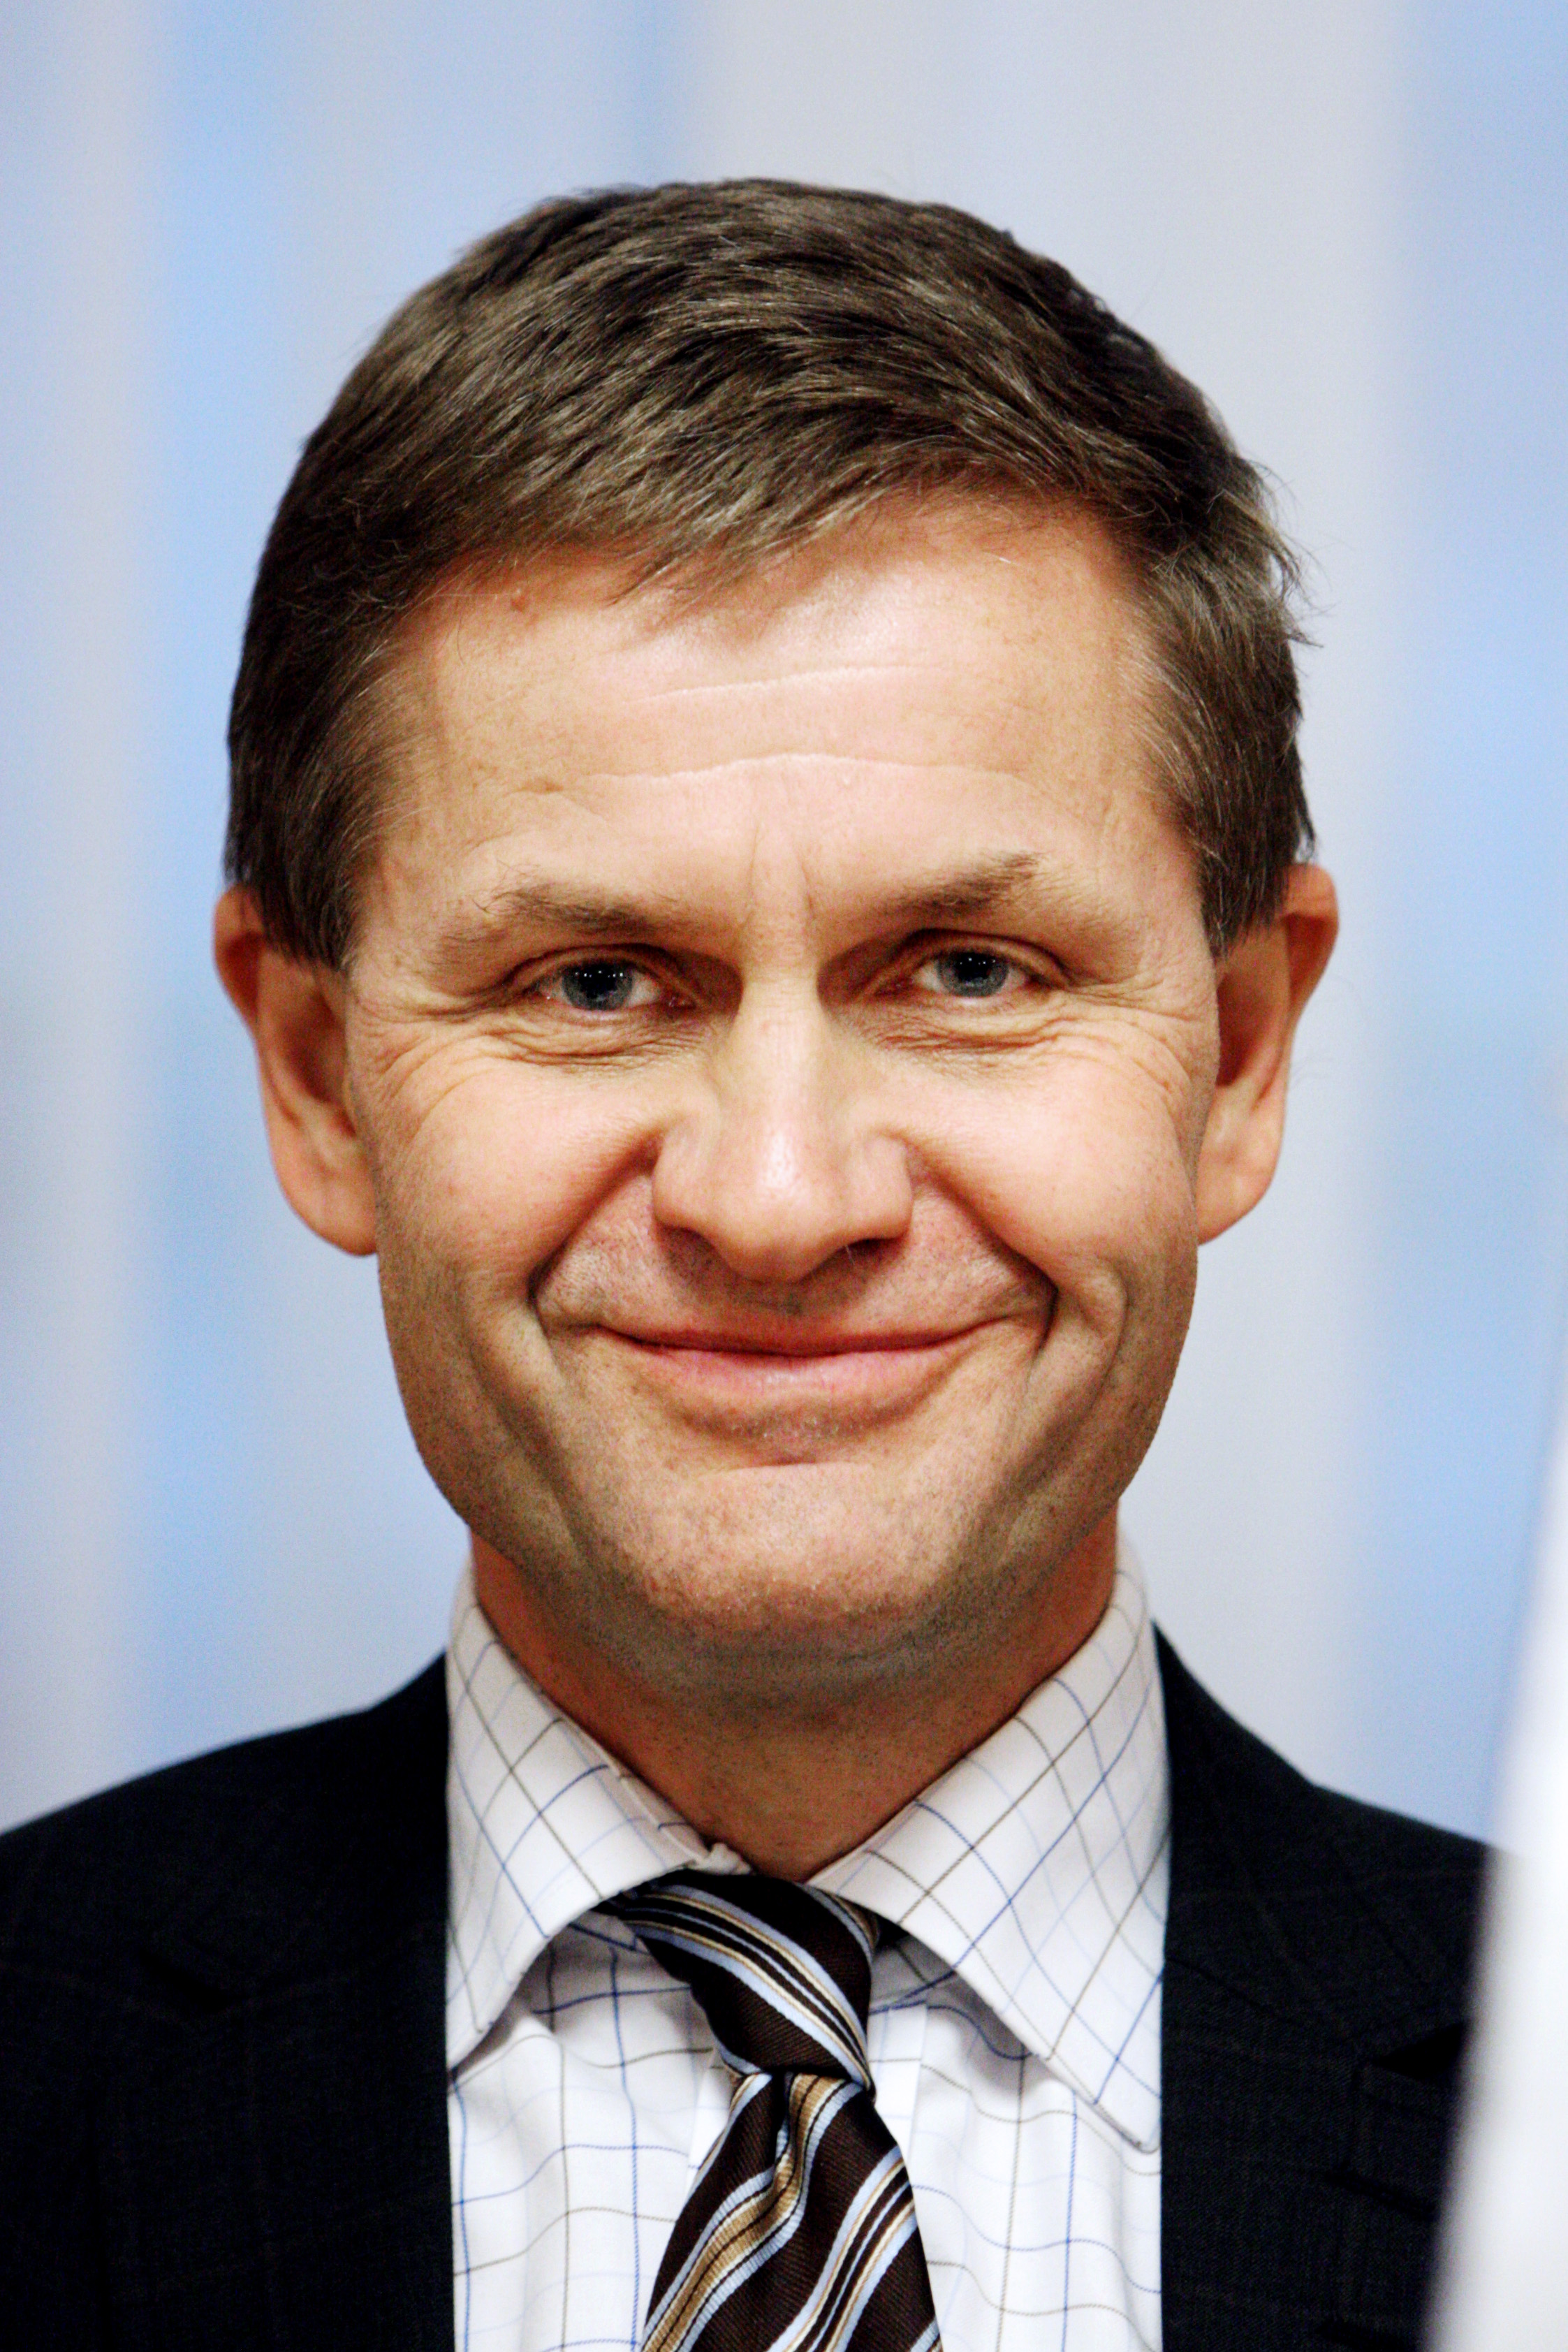 Minister of the Environment and International Development Erik Solheim. Photo: Wikimedia Commons